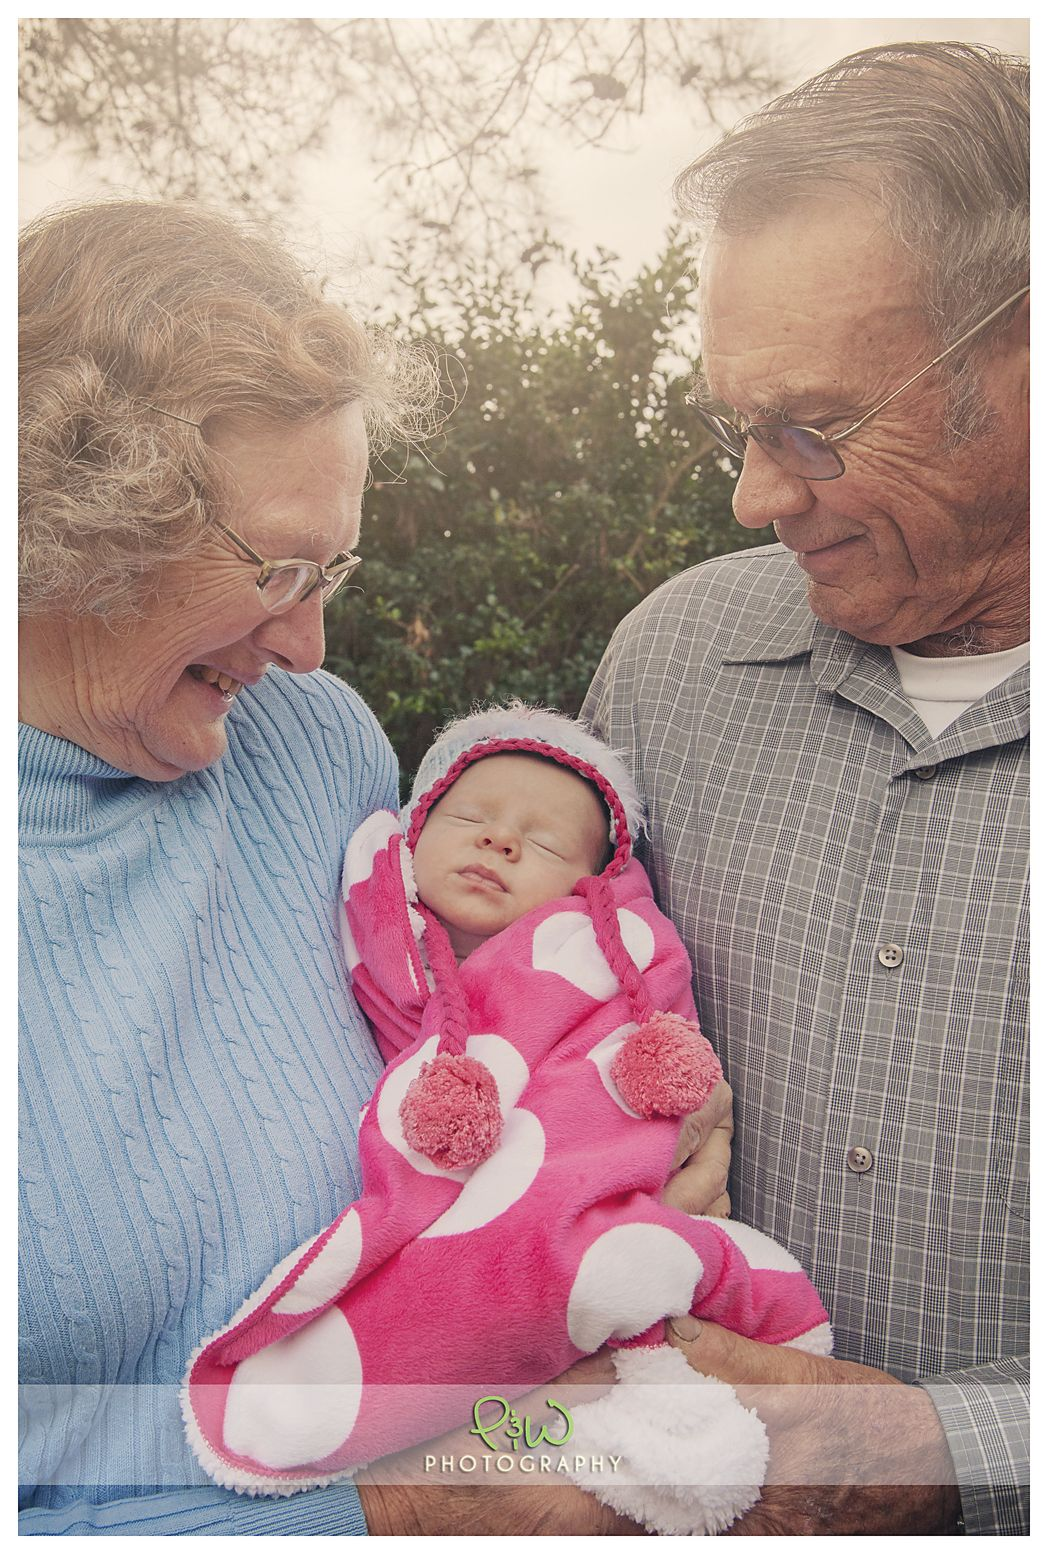 This Grandma and Grandpapa are excited to meet their beautiful granddaughter for the first time. #ideas #inspiration #grandkidsphotography